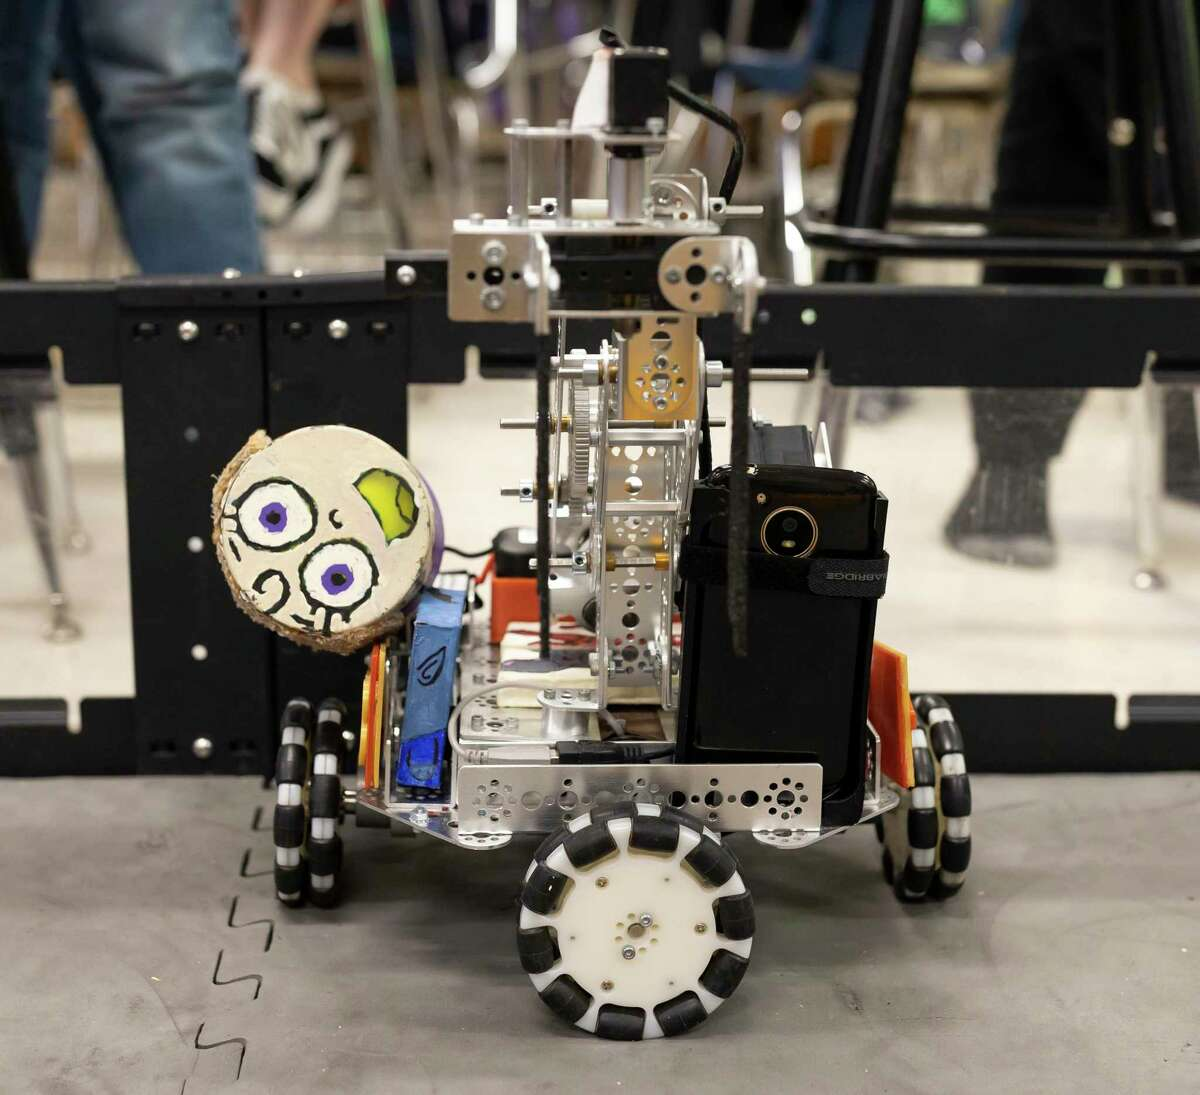 Caney Creek High School drives their robot at The Woodlands High School in preparation for state competition, Wednesday, March 4, 2020. The Woodlands High School and Caney Creek High School hope to form an alliance before state.